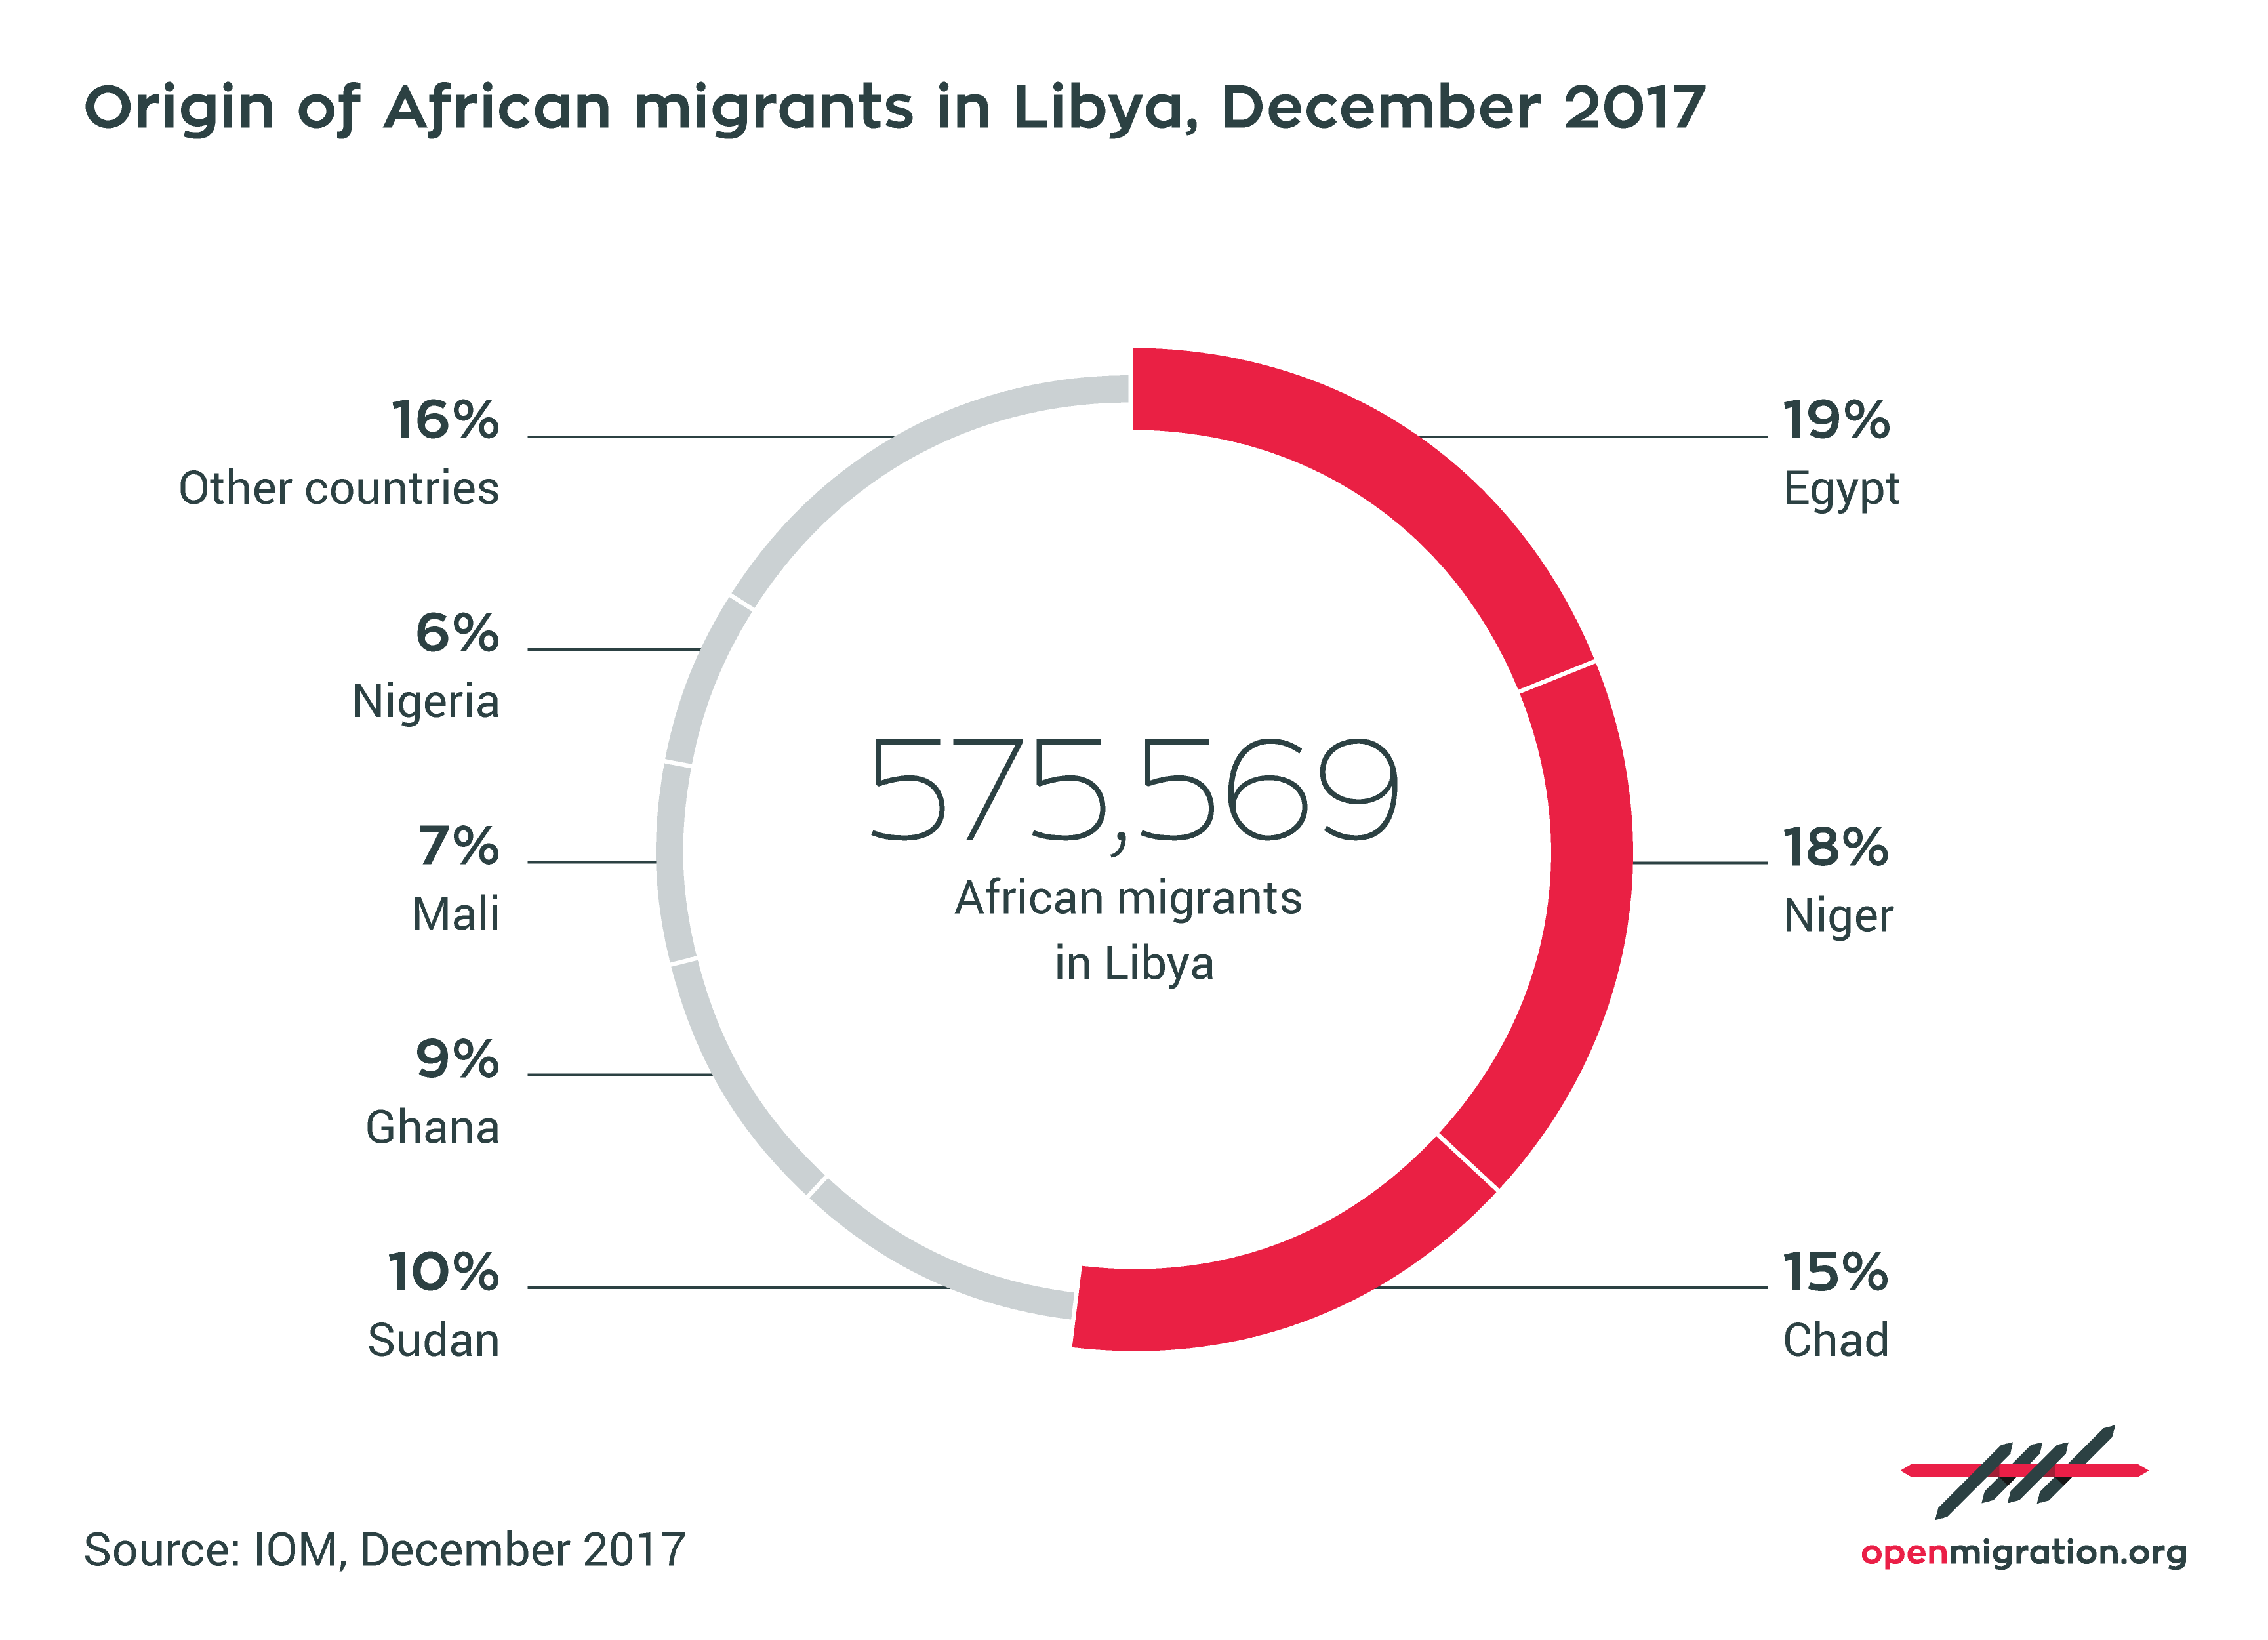 Origin of African migrants in Libya, December 2017